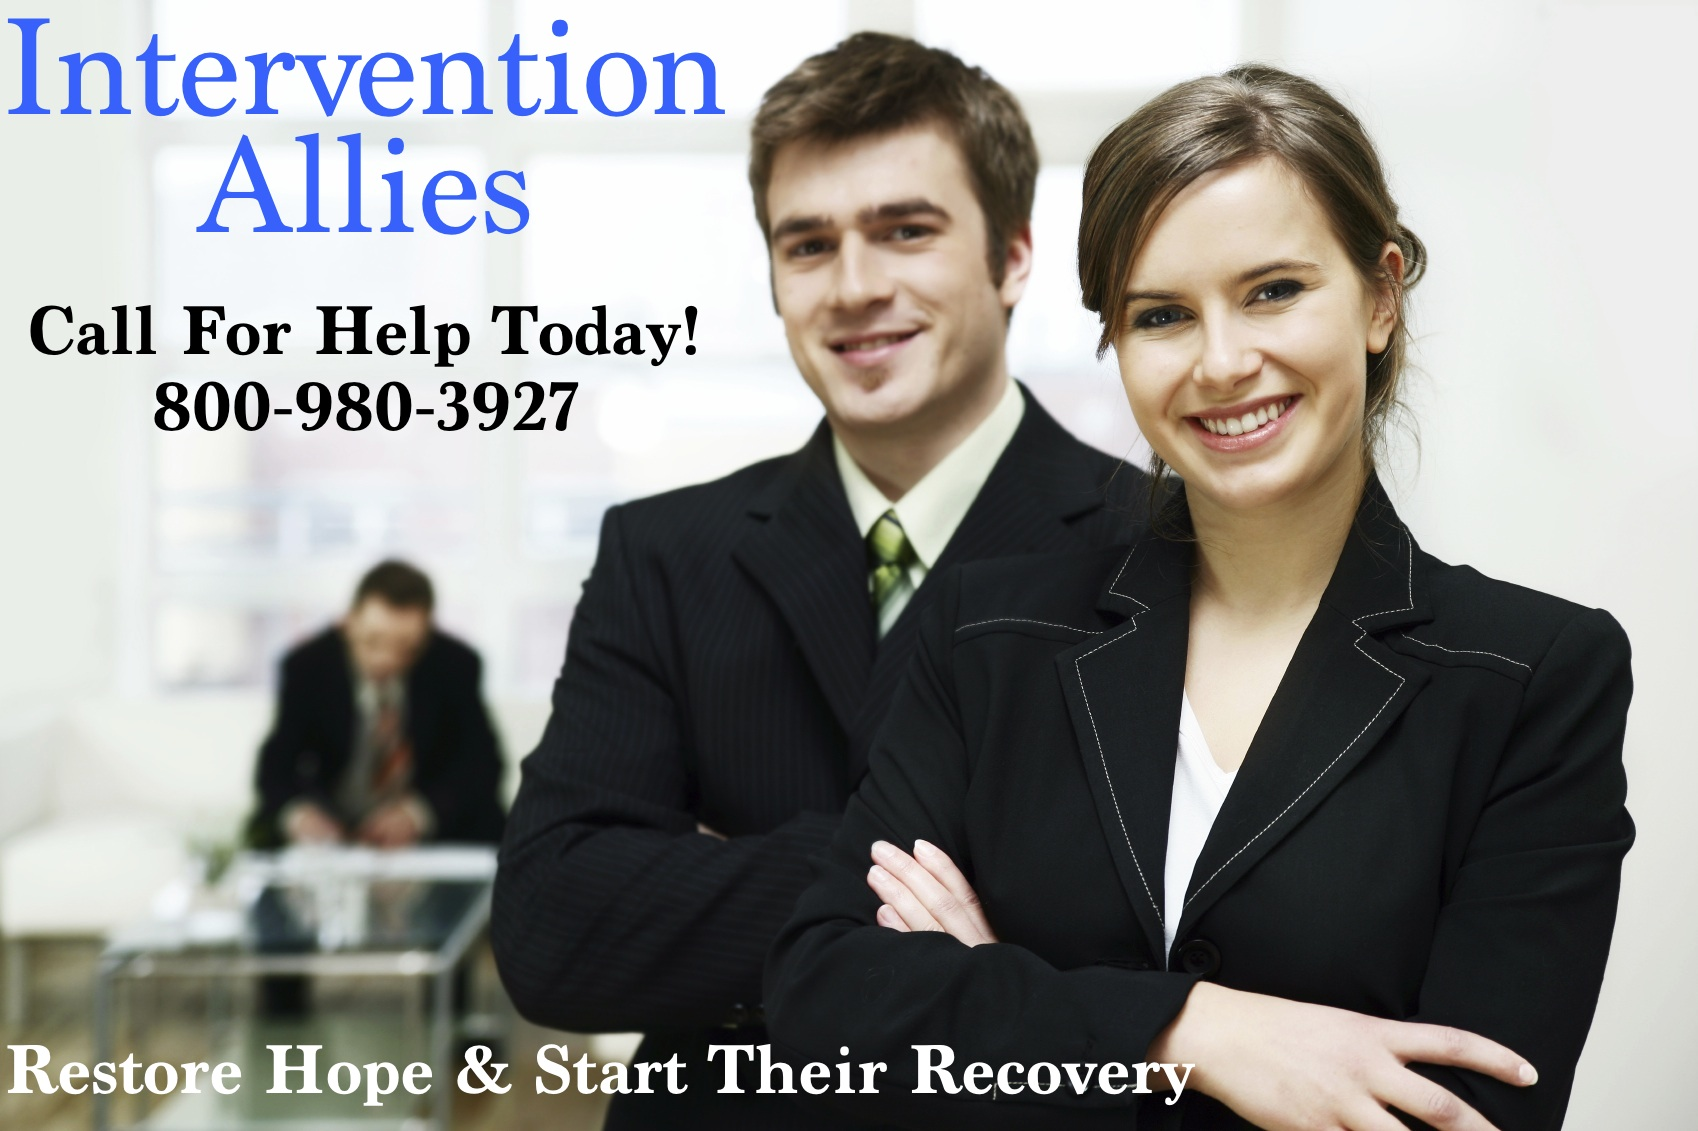 Drug Intervention | Alcohol Intervention | Addiction Intervention | Mental Disorder Intervention | Heroin Intervention | Crystal Meth Intervention